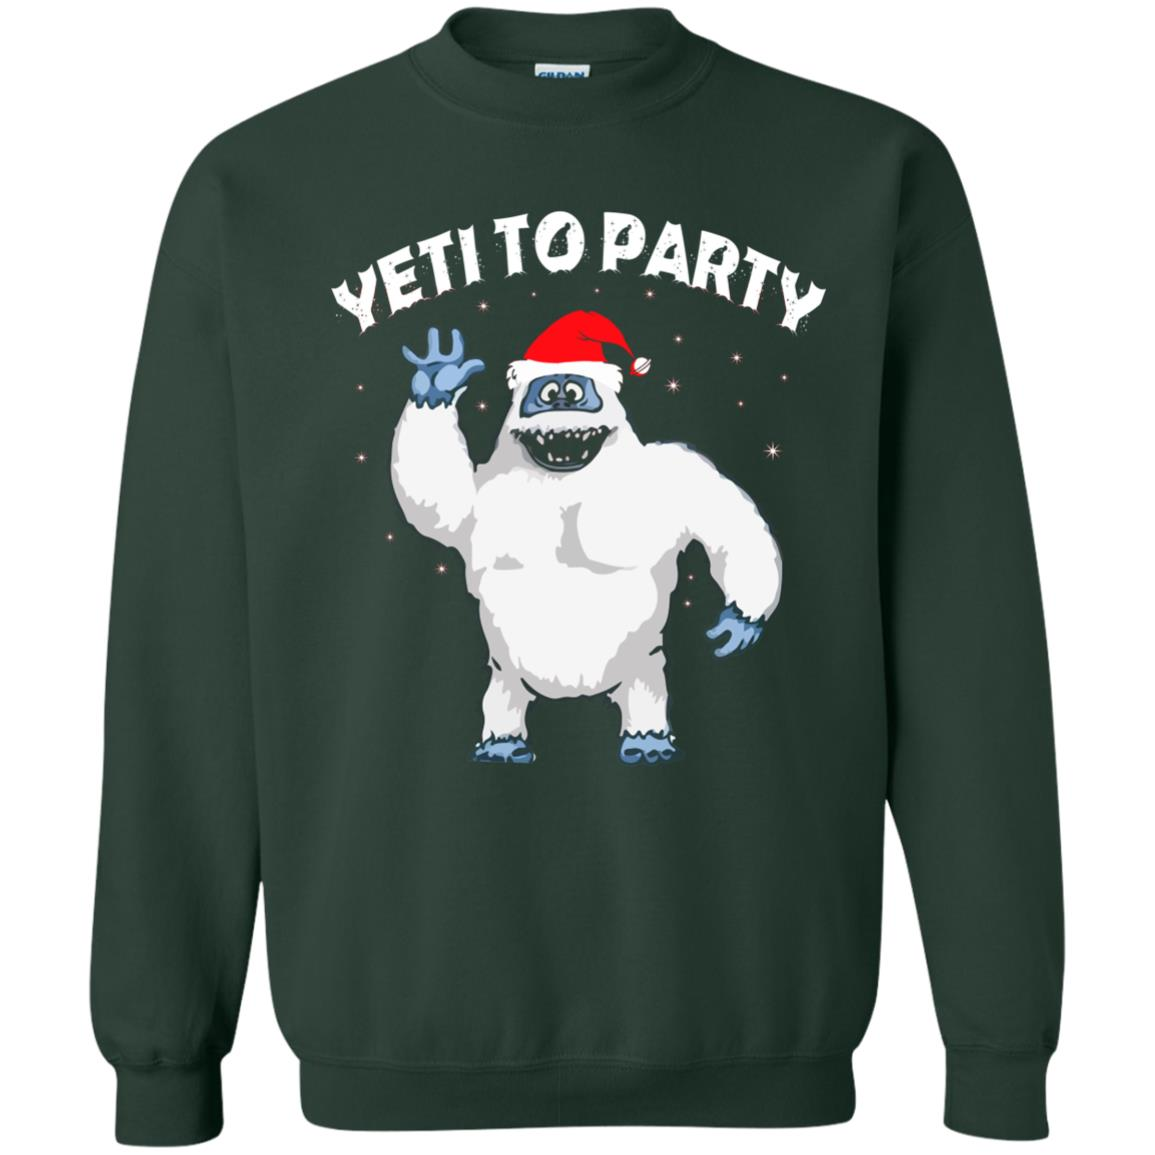 image 34 - Yeti to Party Christmas Sweater, Hoodie